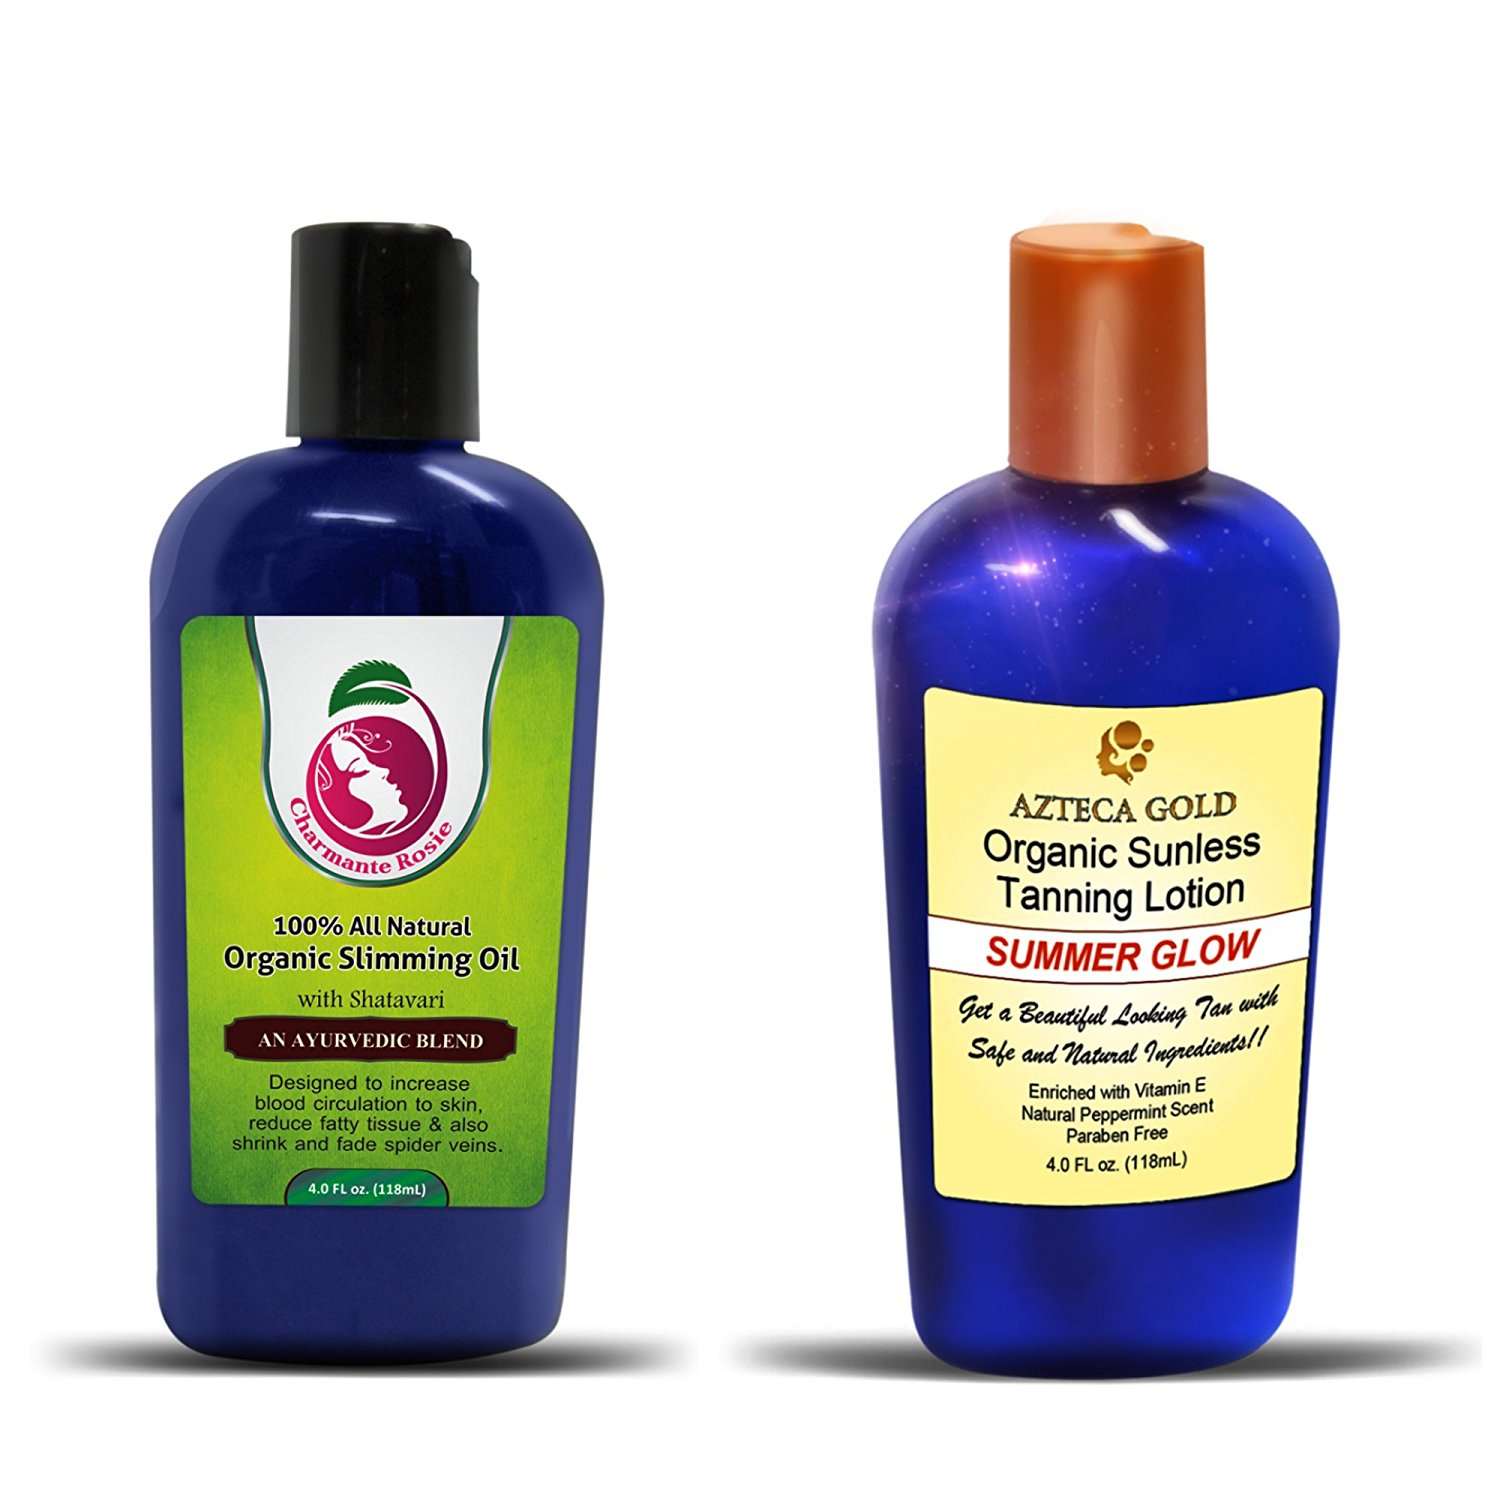 Slim Tan Combo Best Natural Sunless Tanning Lotion and Cellulite reducing Oil - Organic Alternative to Harsh Tanning Products. Slimming Oil Increases Blood Circulation Tighten and Tone Your Skin